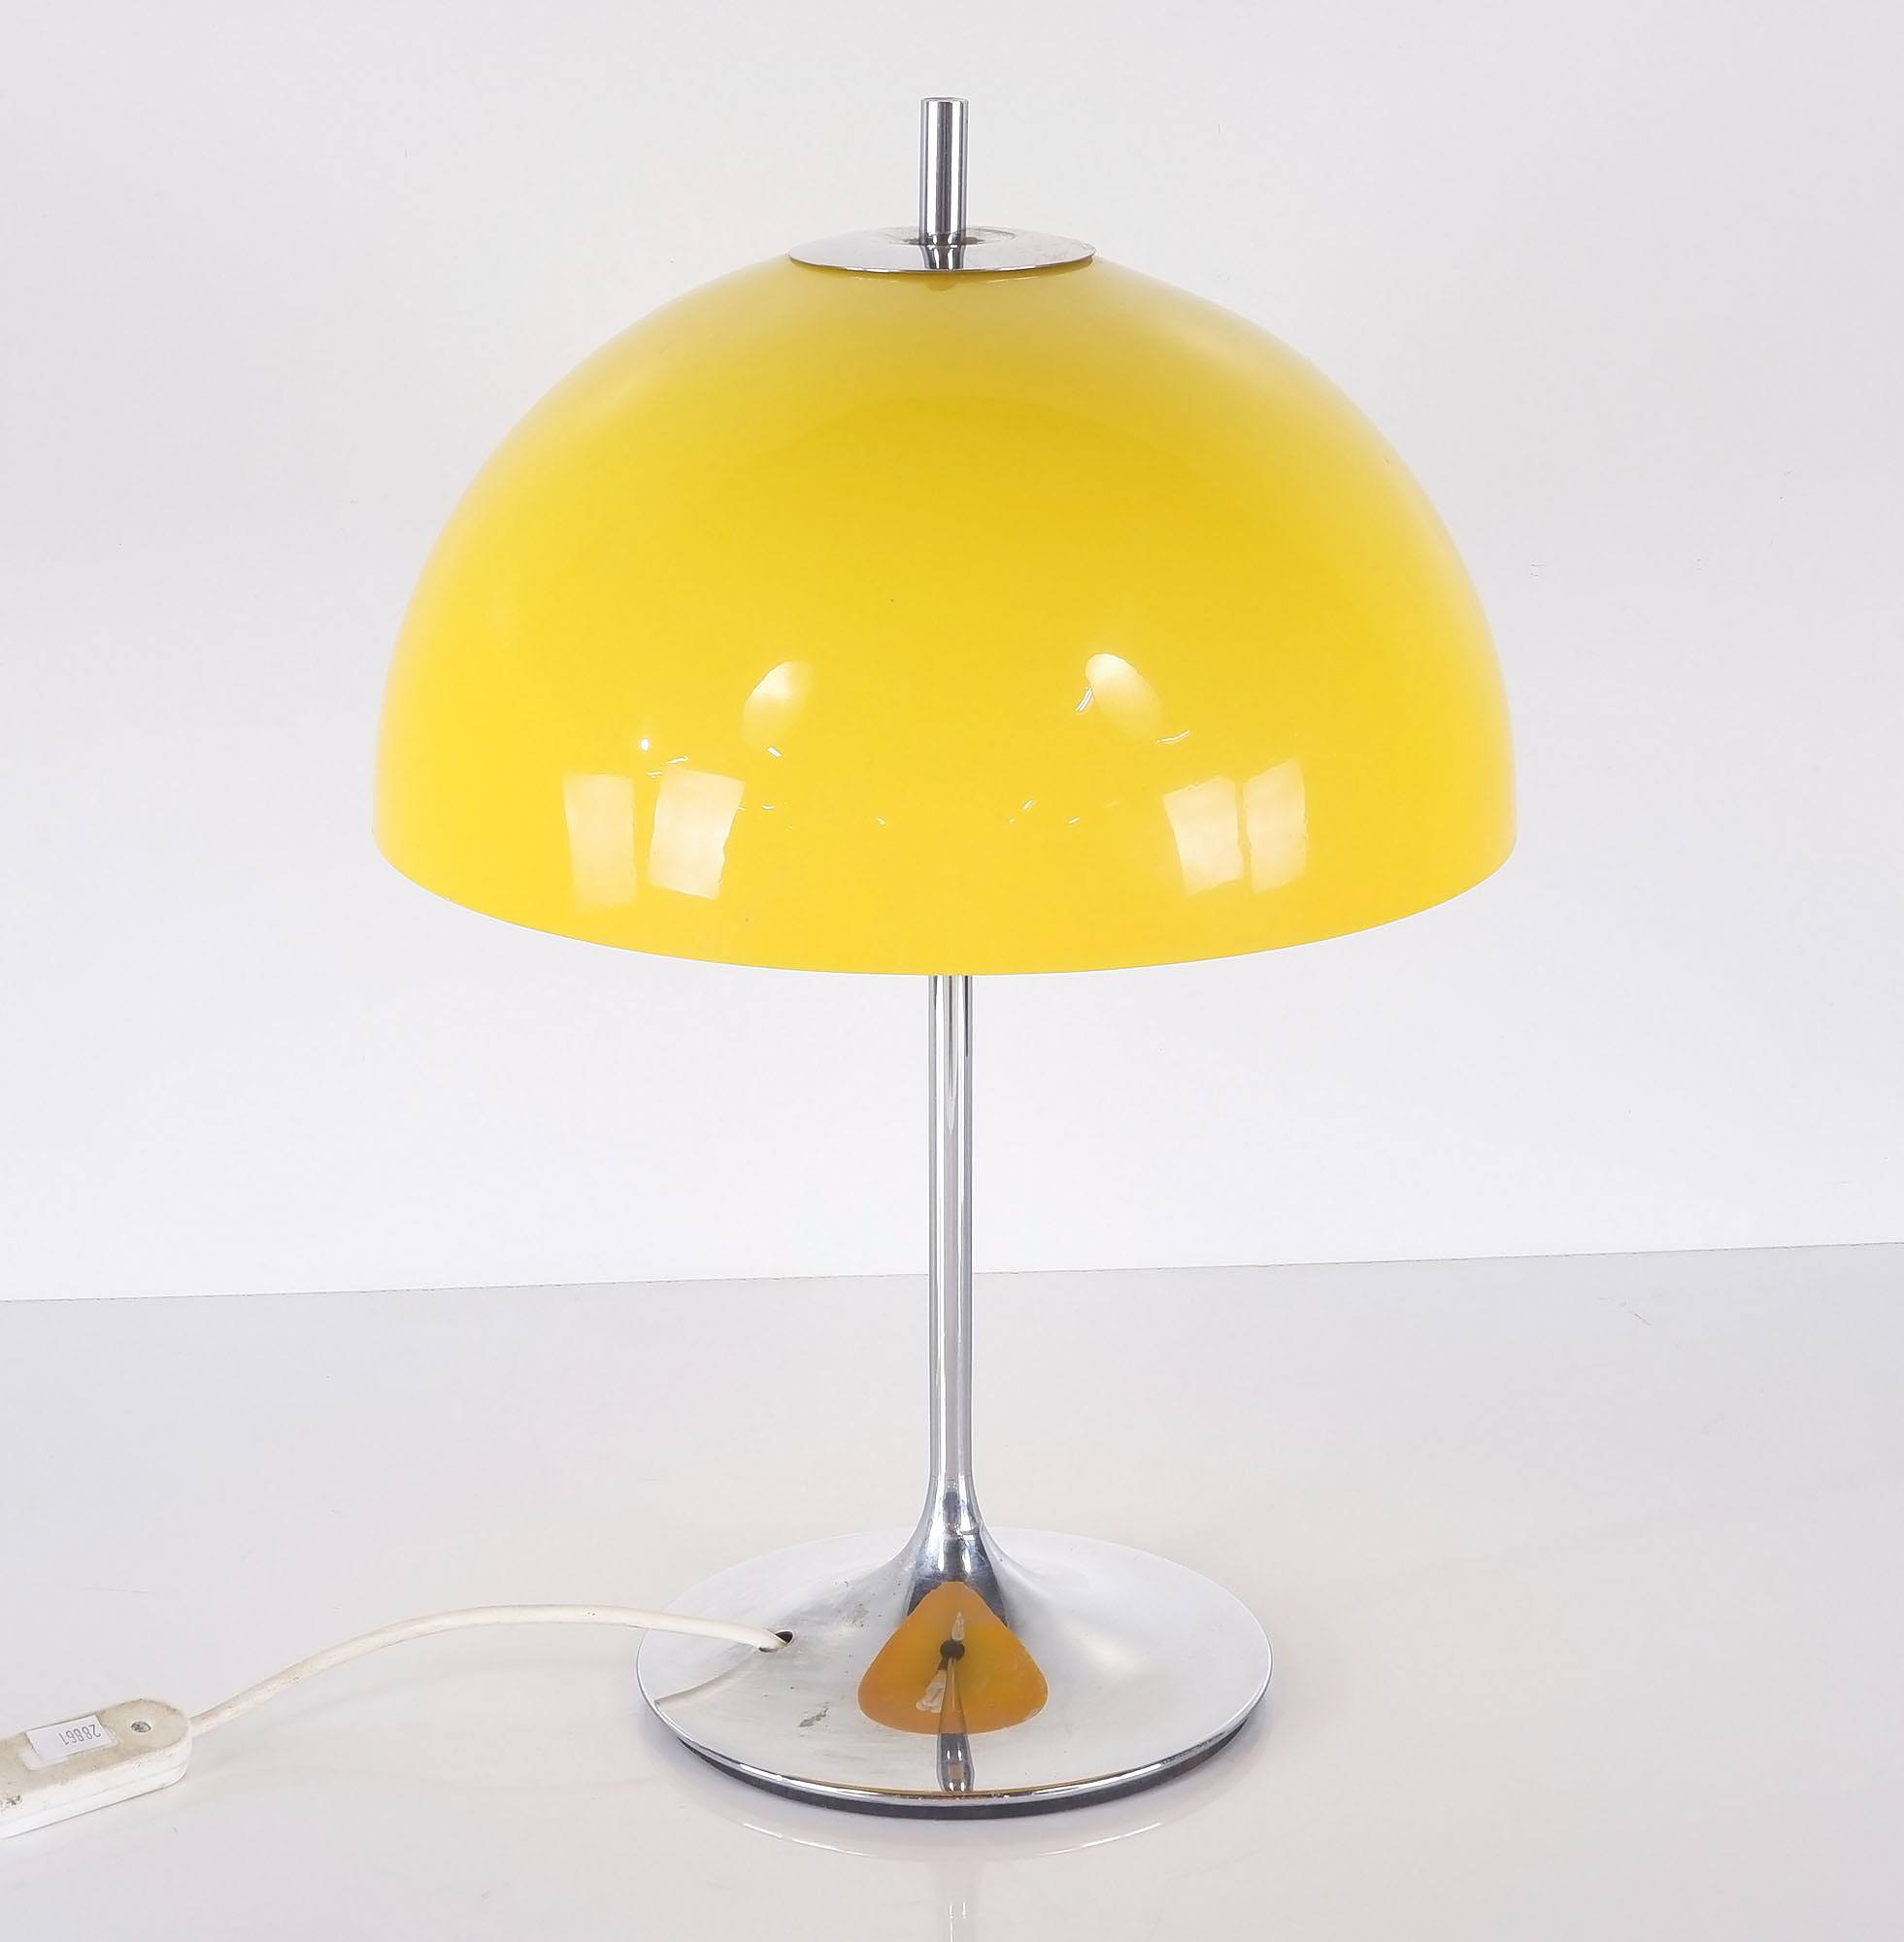 'Verner Panton Style Table Lamp'